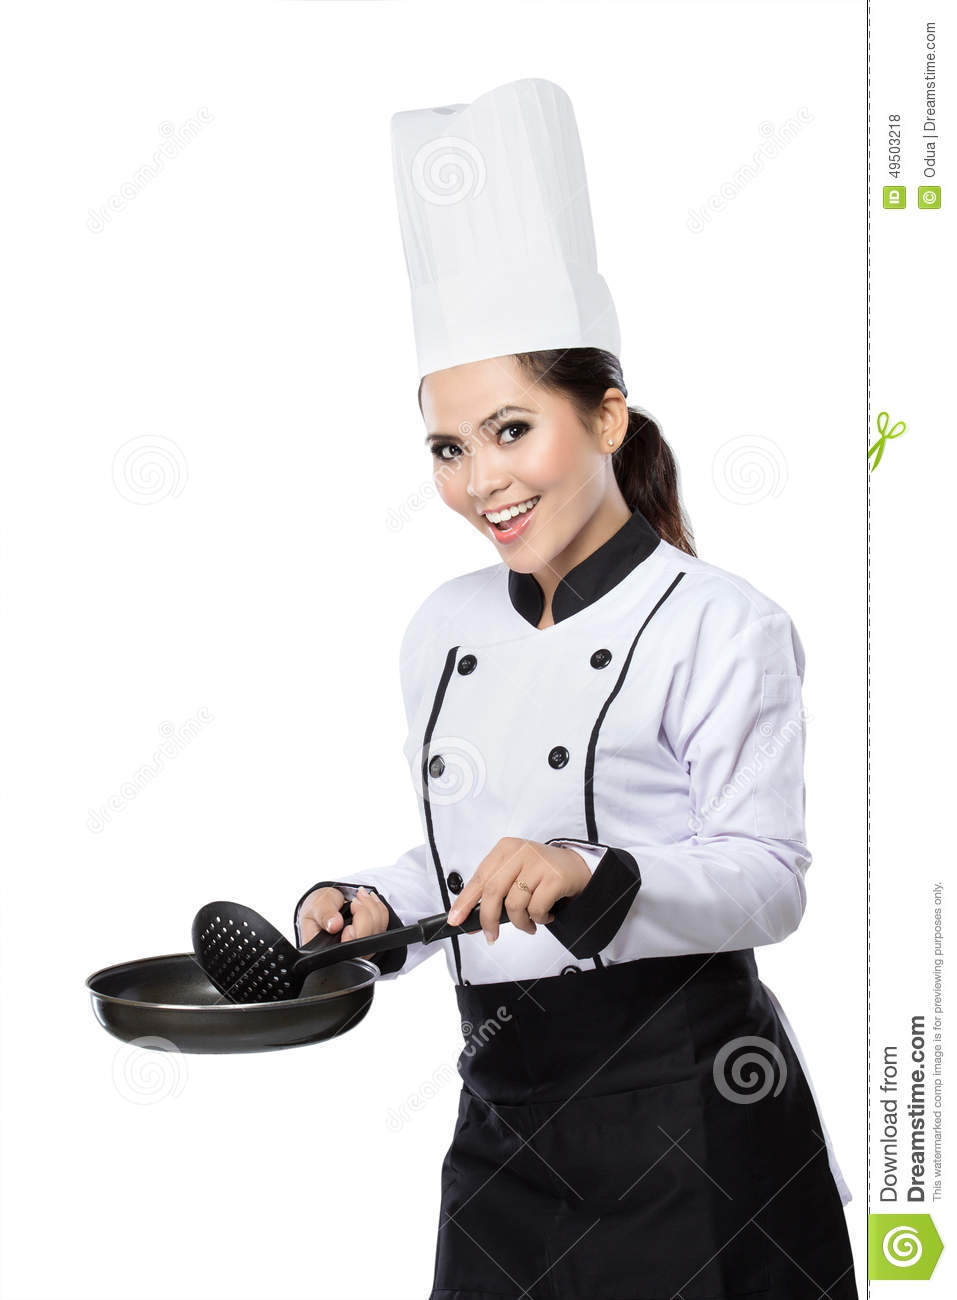 cooking to become a chef essay Enroll in a culinary arts program going to cooking school isn't a prerequisite for  becoming a chef, but it can.